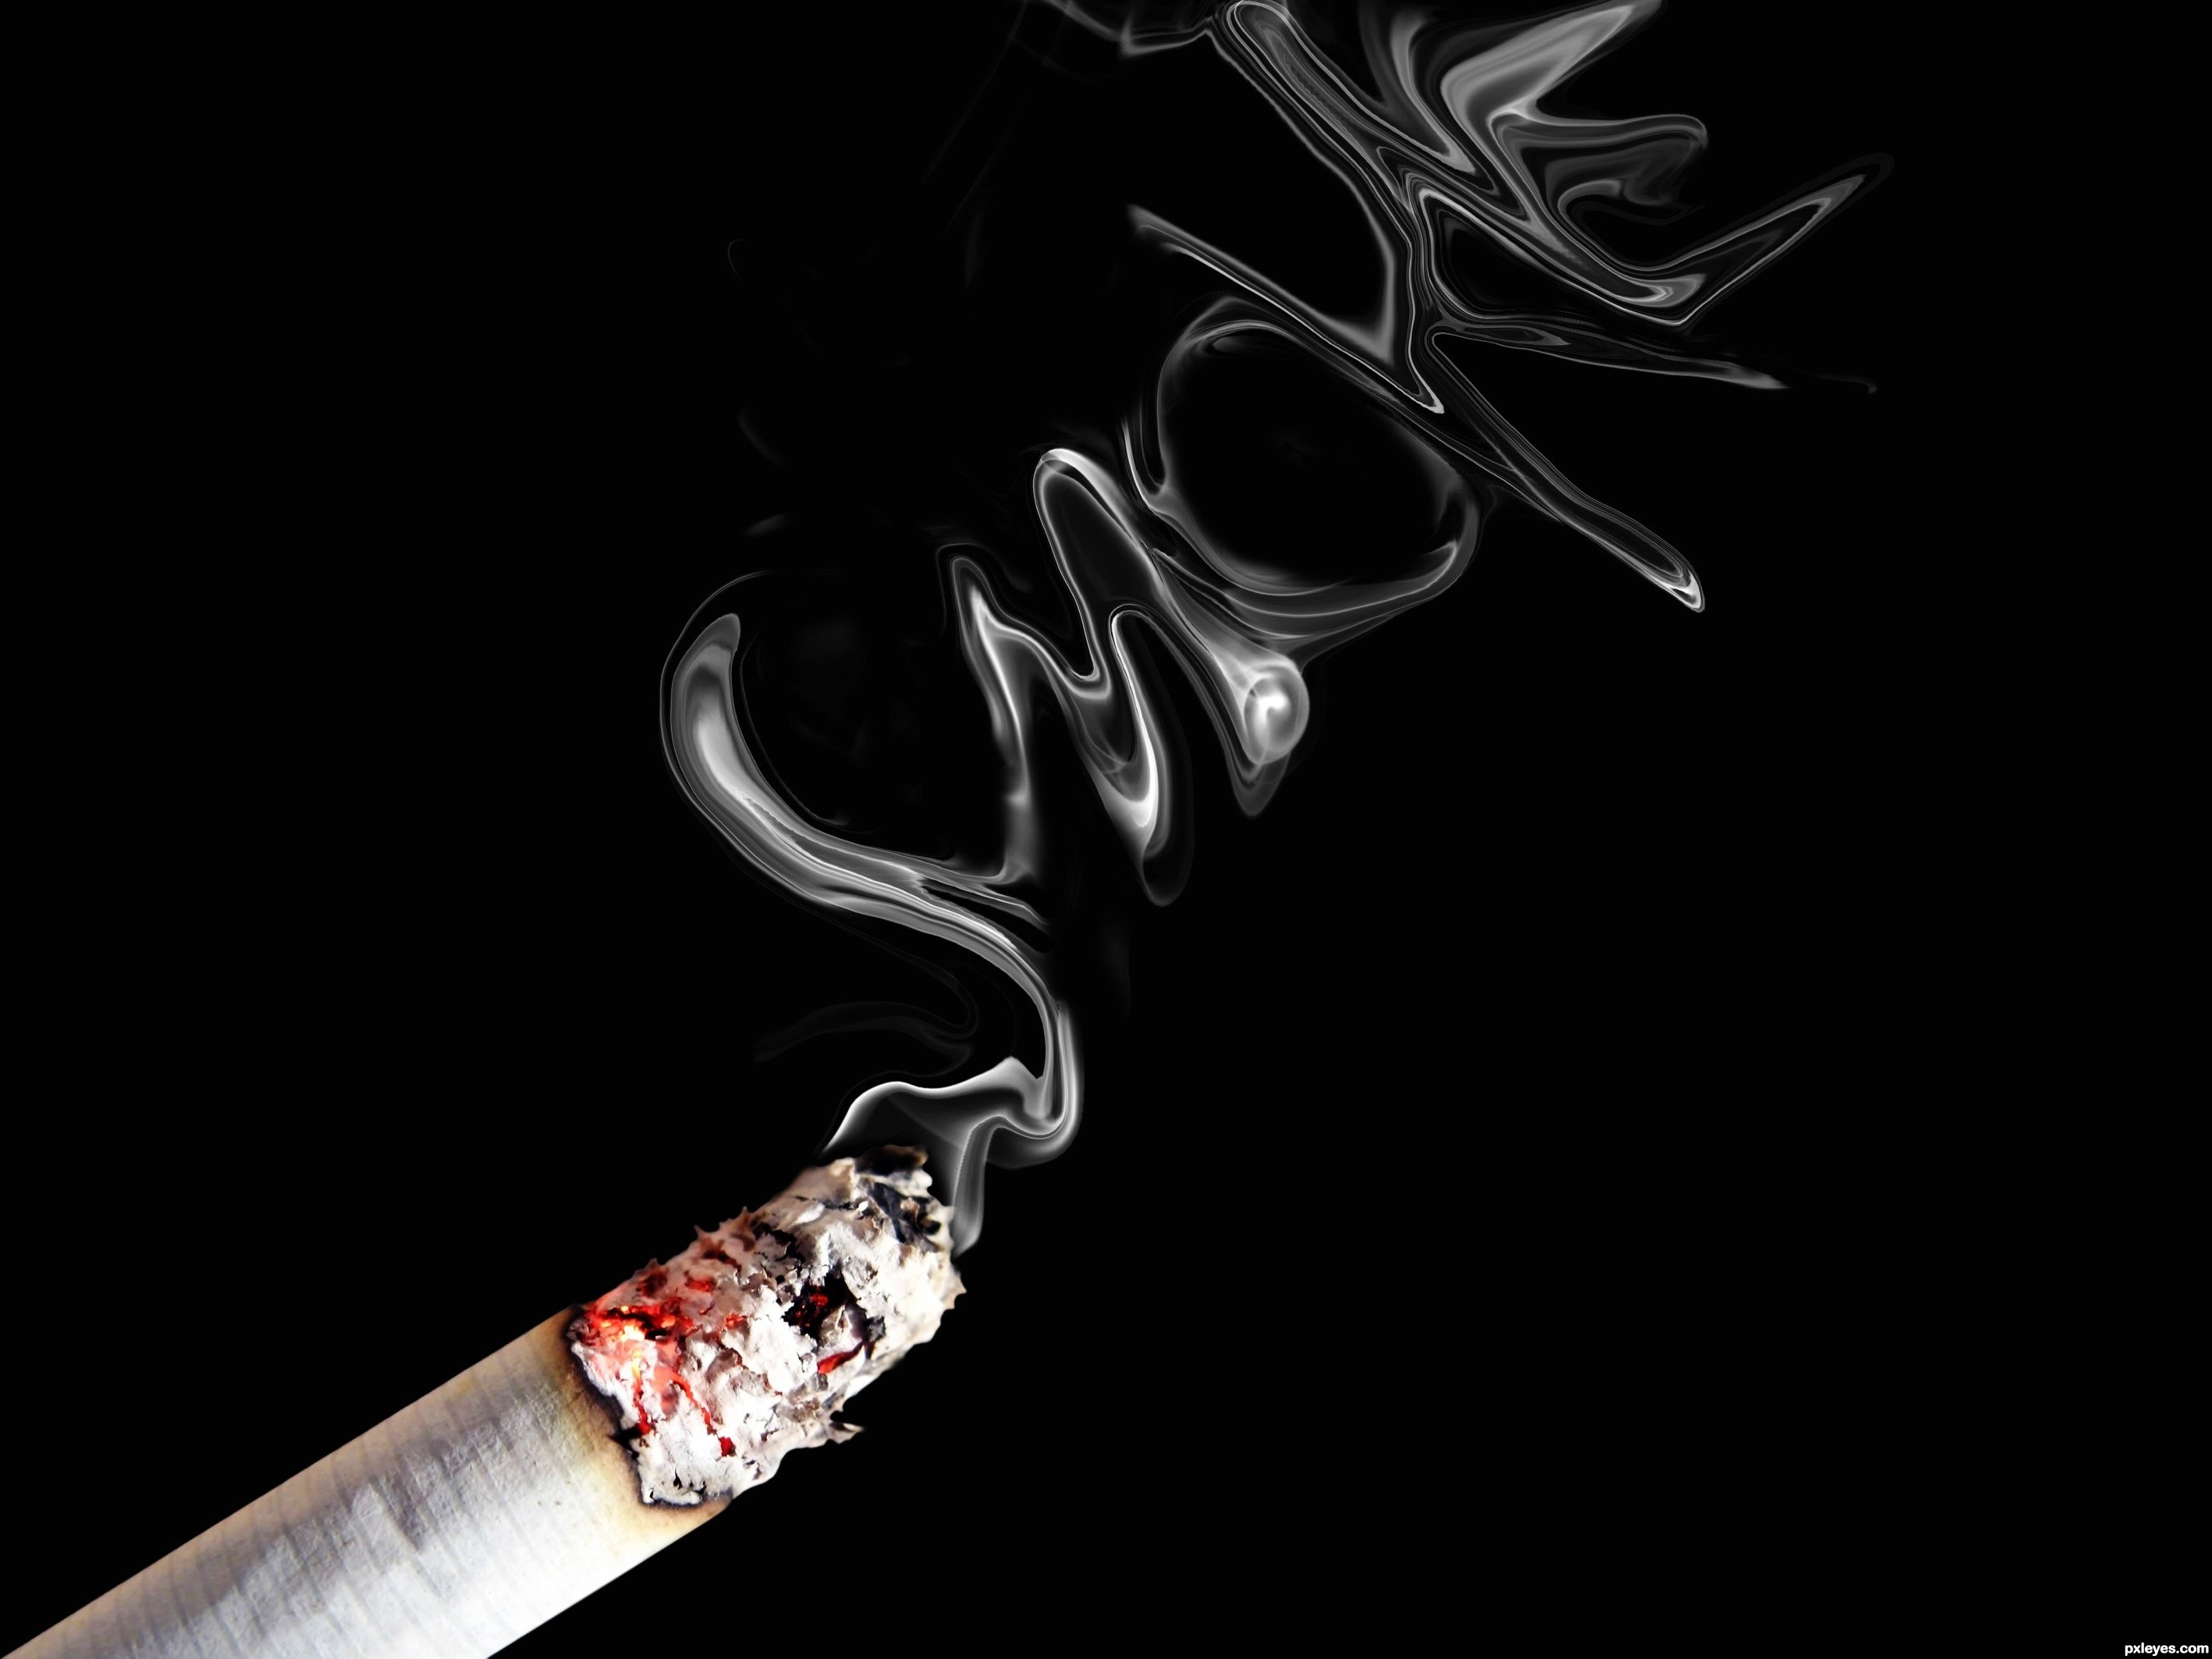 Cigaret With Girl Wallpaper Download Cigarette Smoke Smoking Cigarettes Tobacco Cigars Cigar